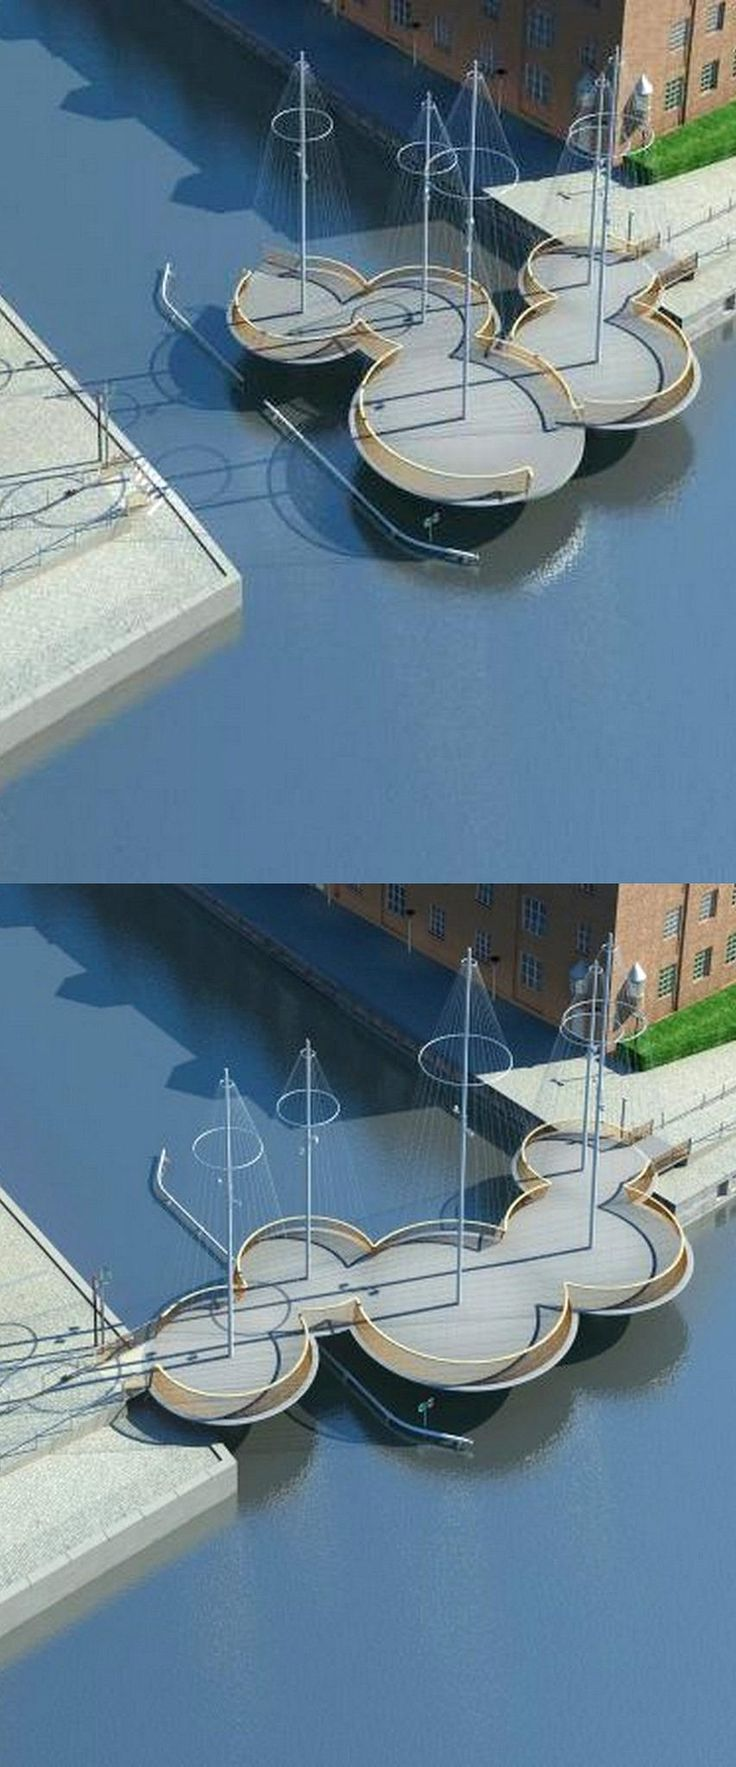 Cirkelbroen cycle and pedestrian bridge, Copenhagen by Olafur Eliasson. Click image for link to full story with video, and visit the slowottawa.ca boards >> https://www.pinterest.com/slowottawa/